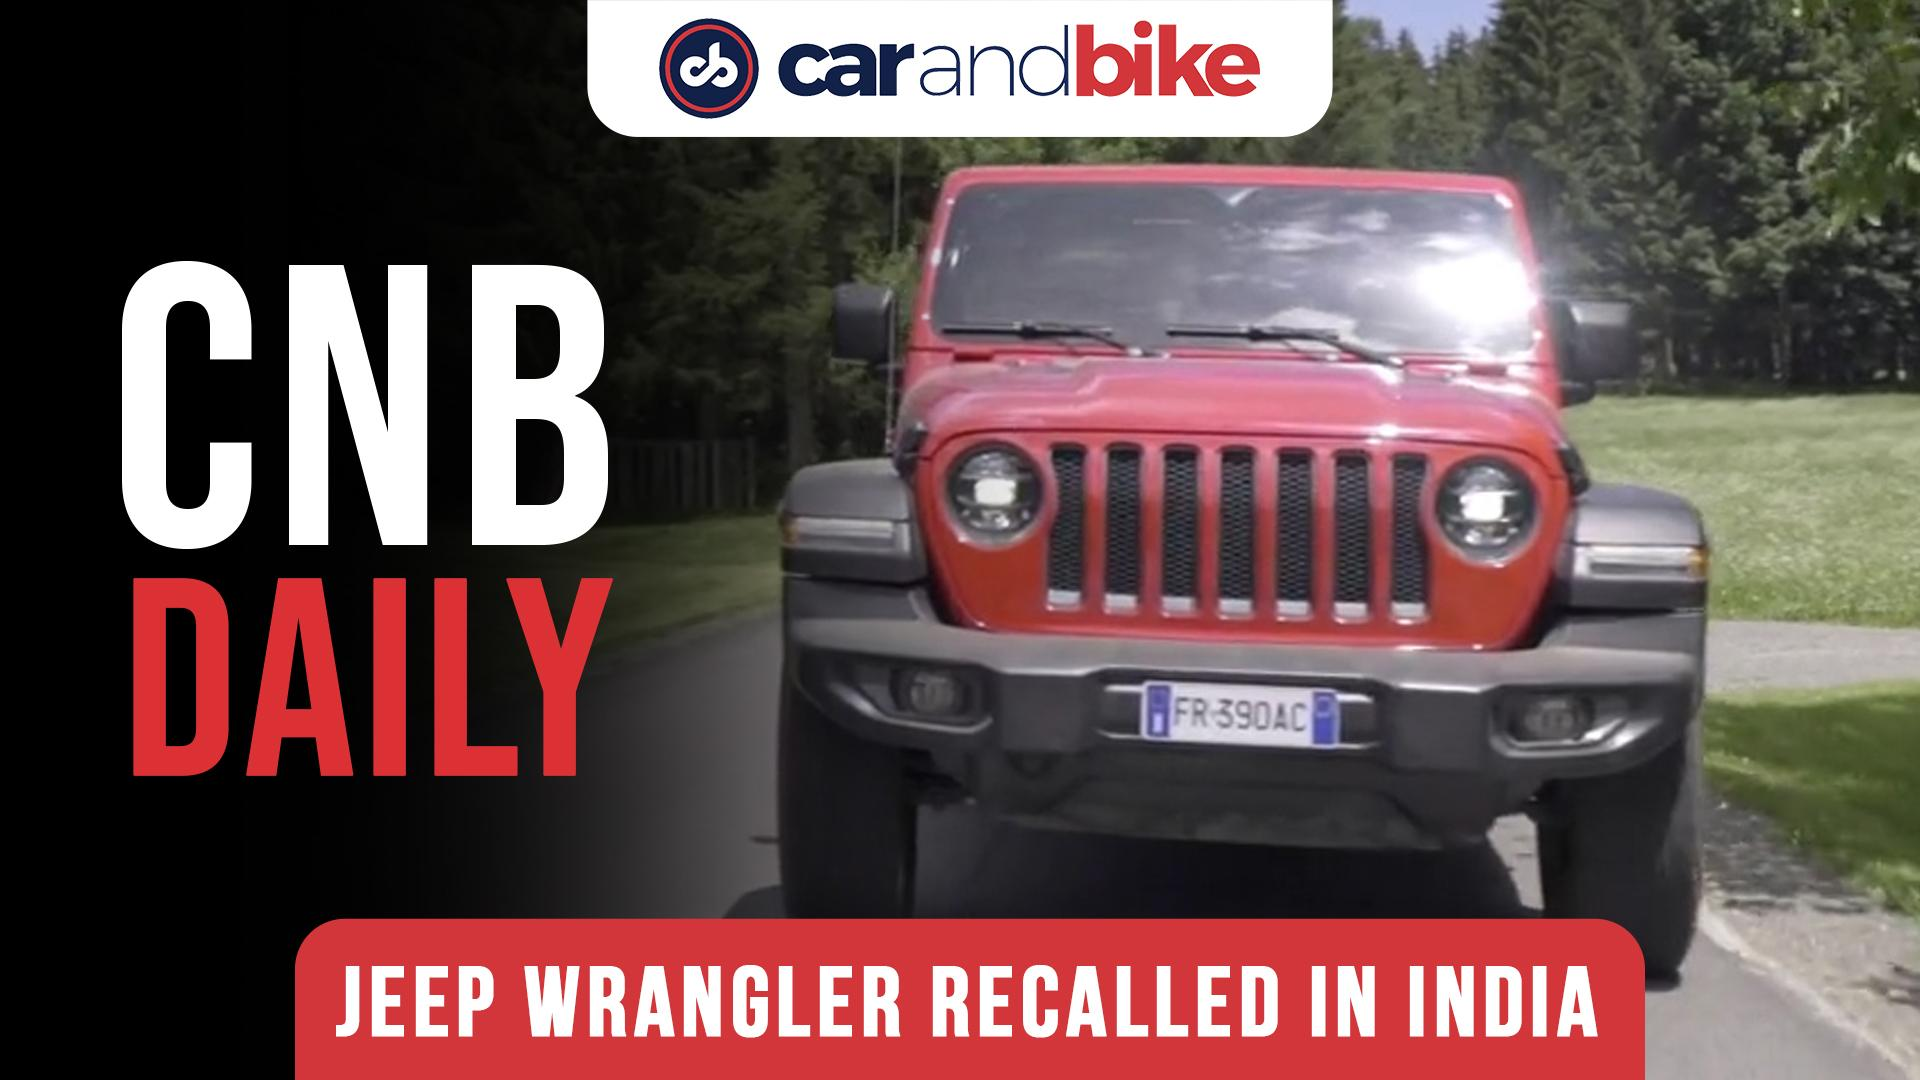 Jeep Wrangler recalled in India